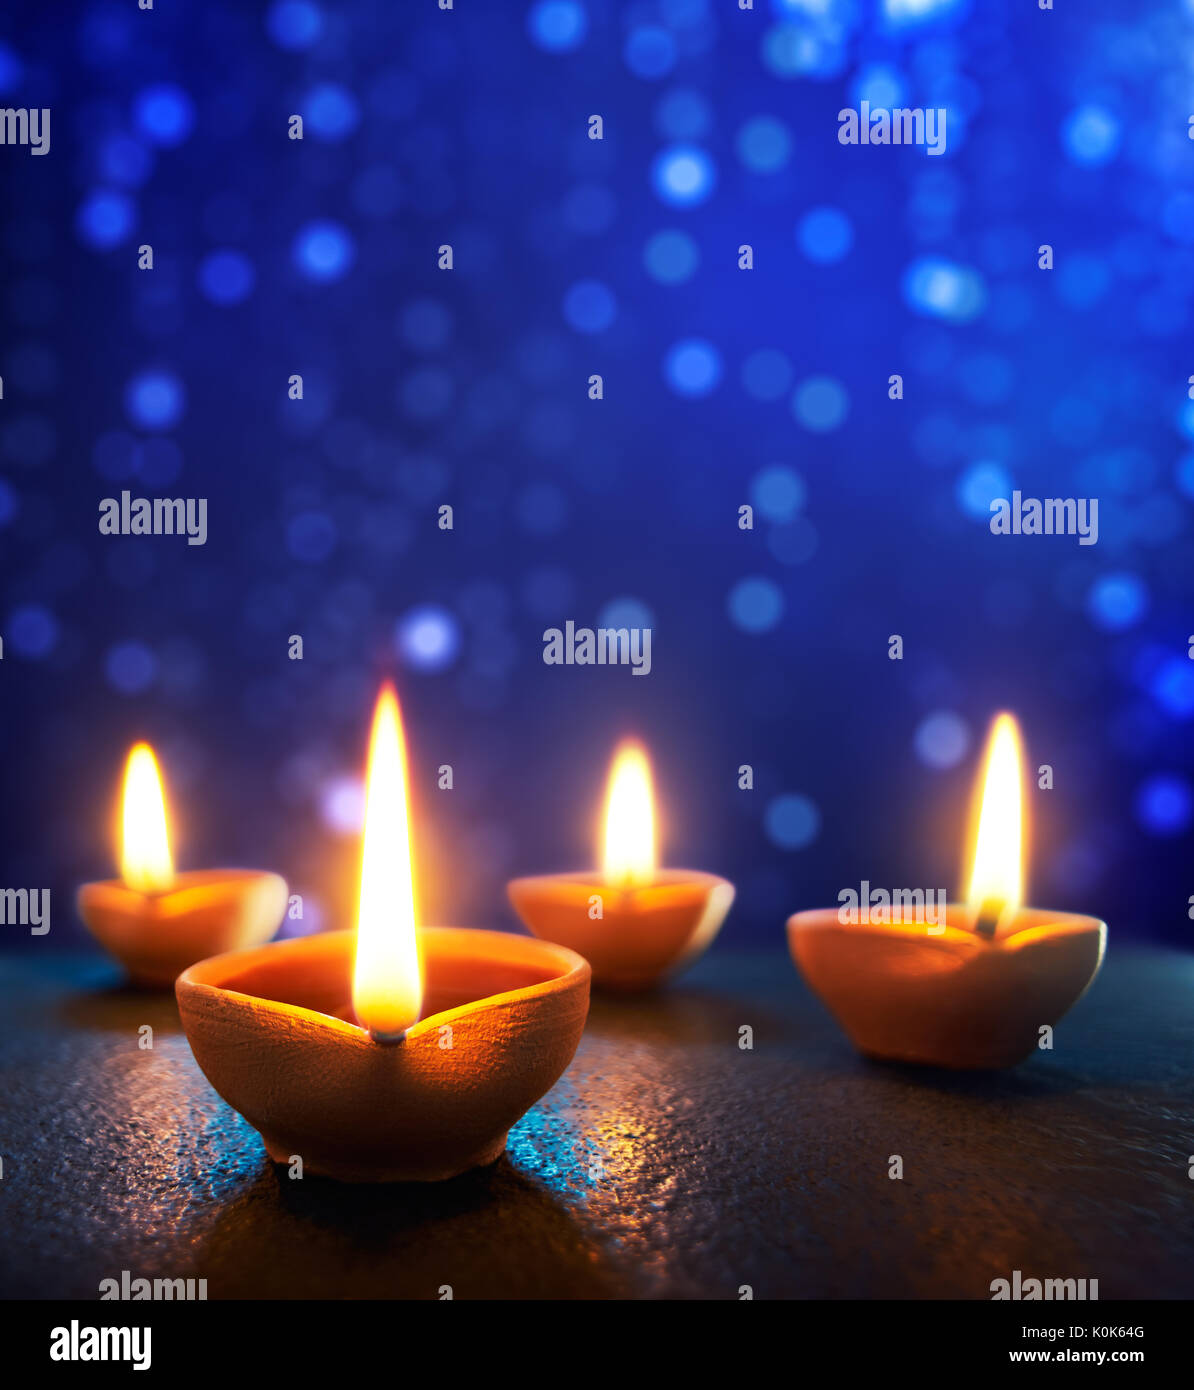 Happy Diwali - Diya lamps lit during Diwali celebration - Stock Image